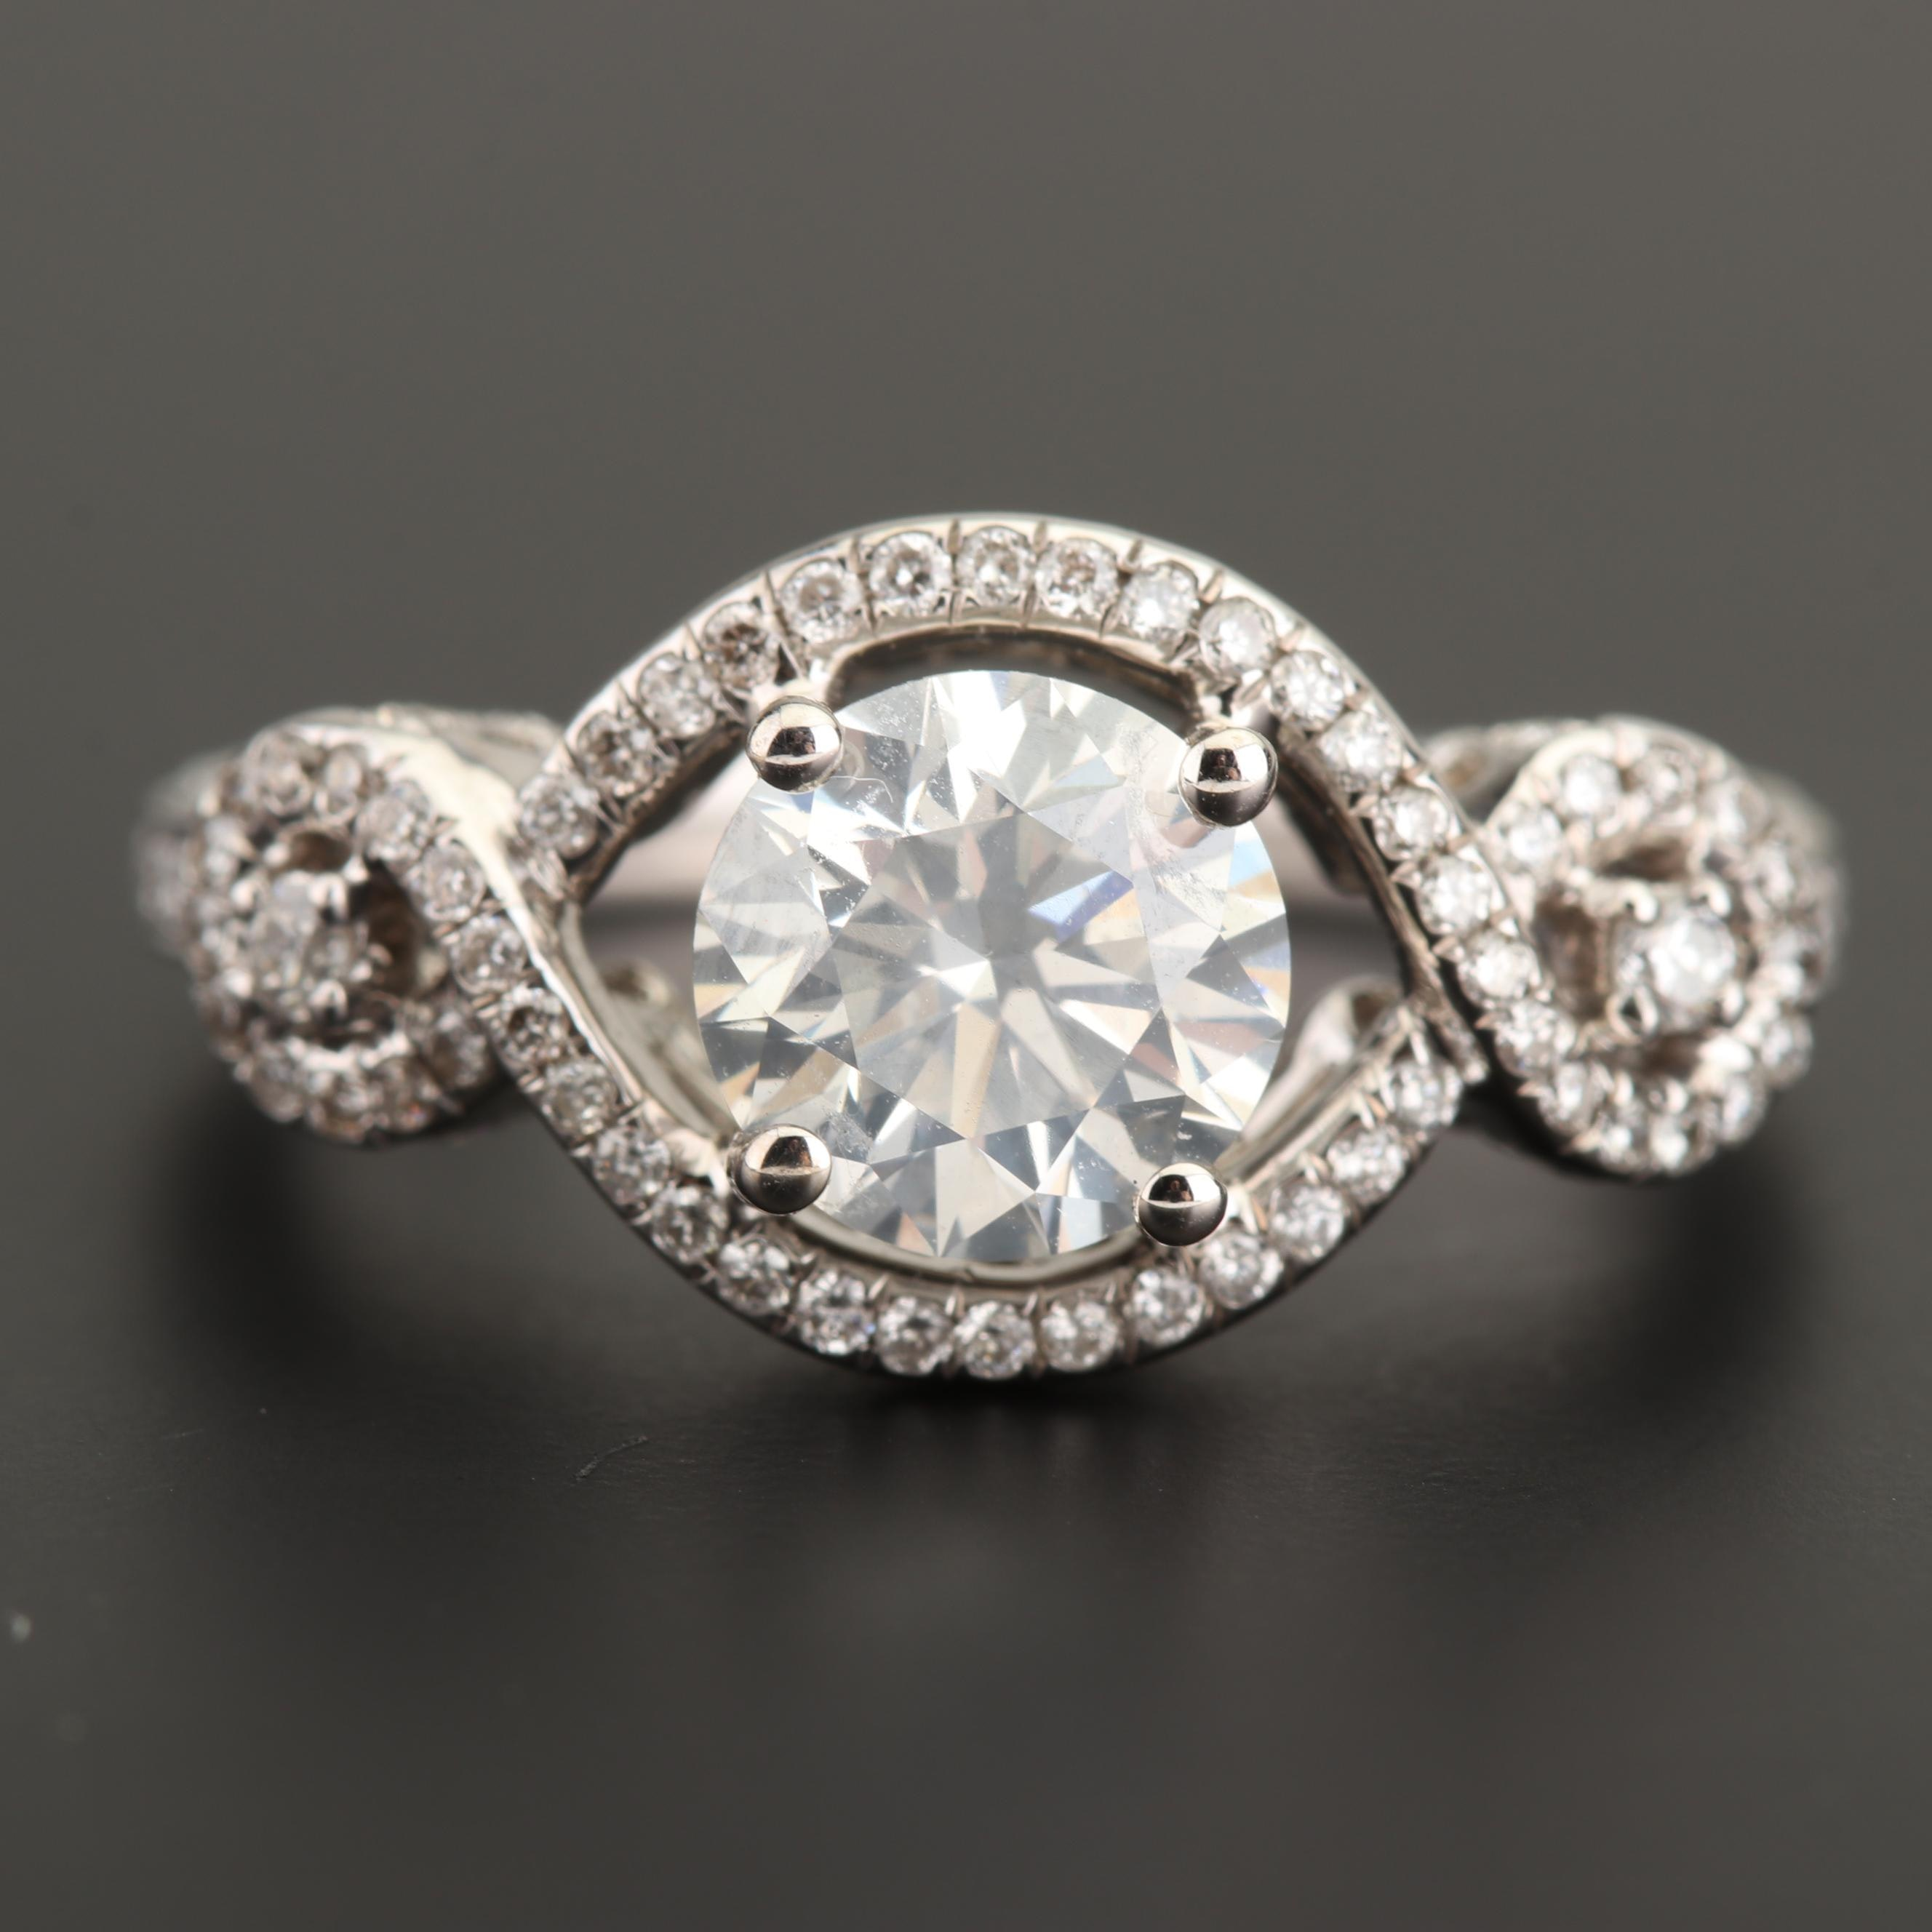 18K White Gold and 2.09 CTW Diamond Ring with GIA Report